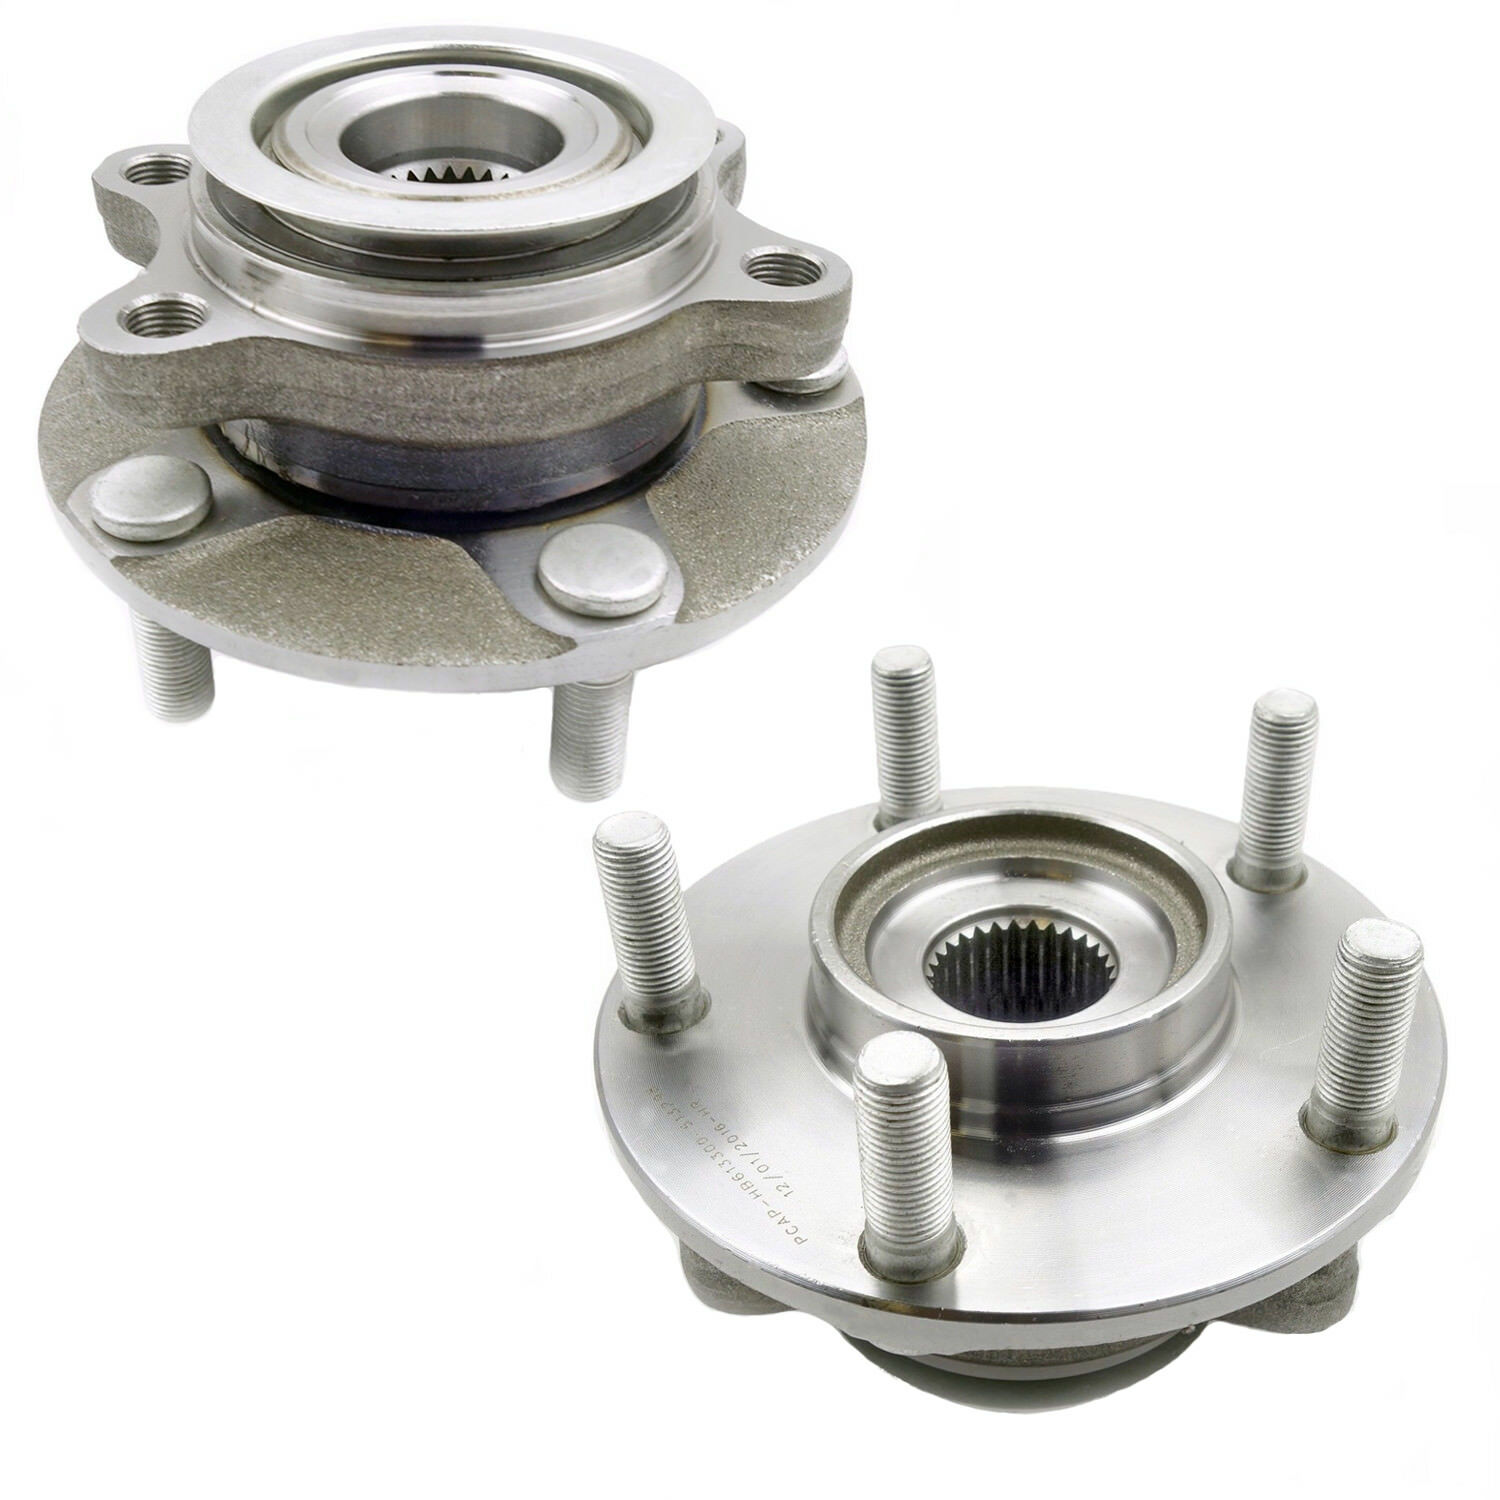 2 Front New Wheel Hub Bearing Assembly Pair/Set for Nissan ...